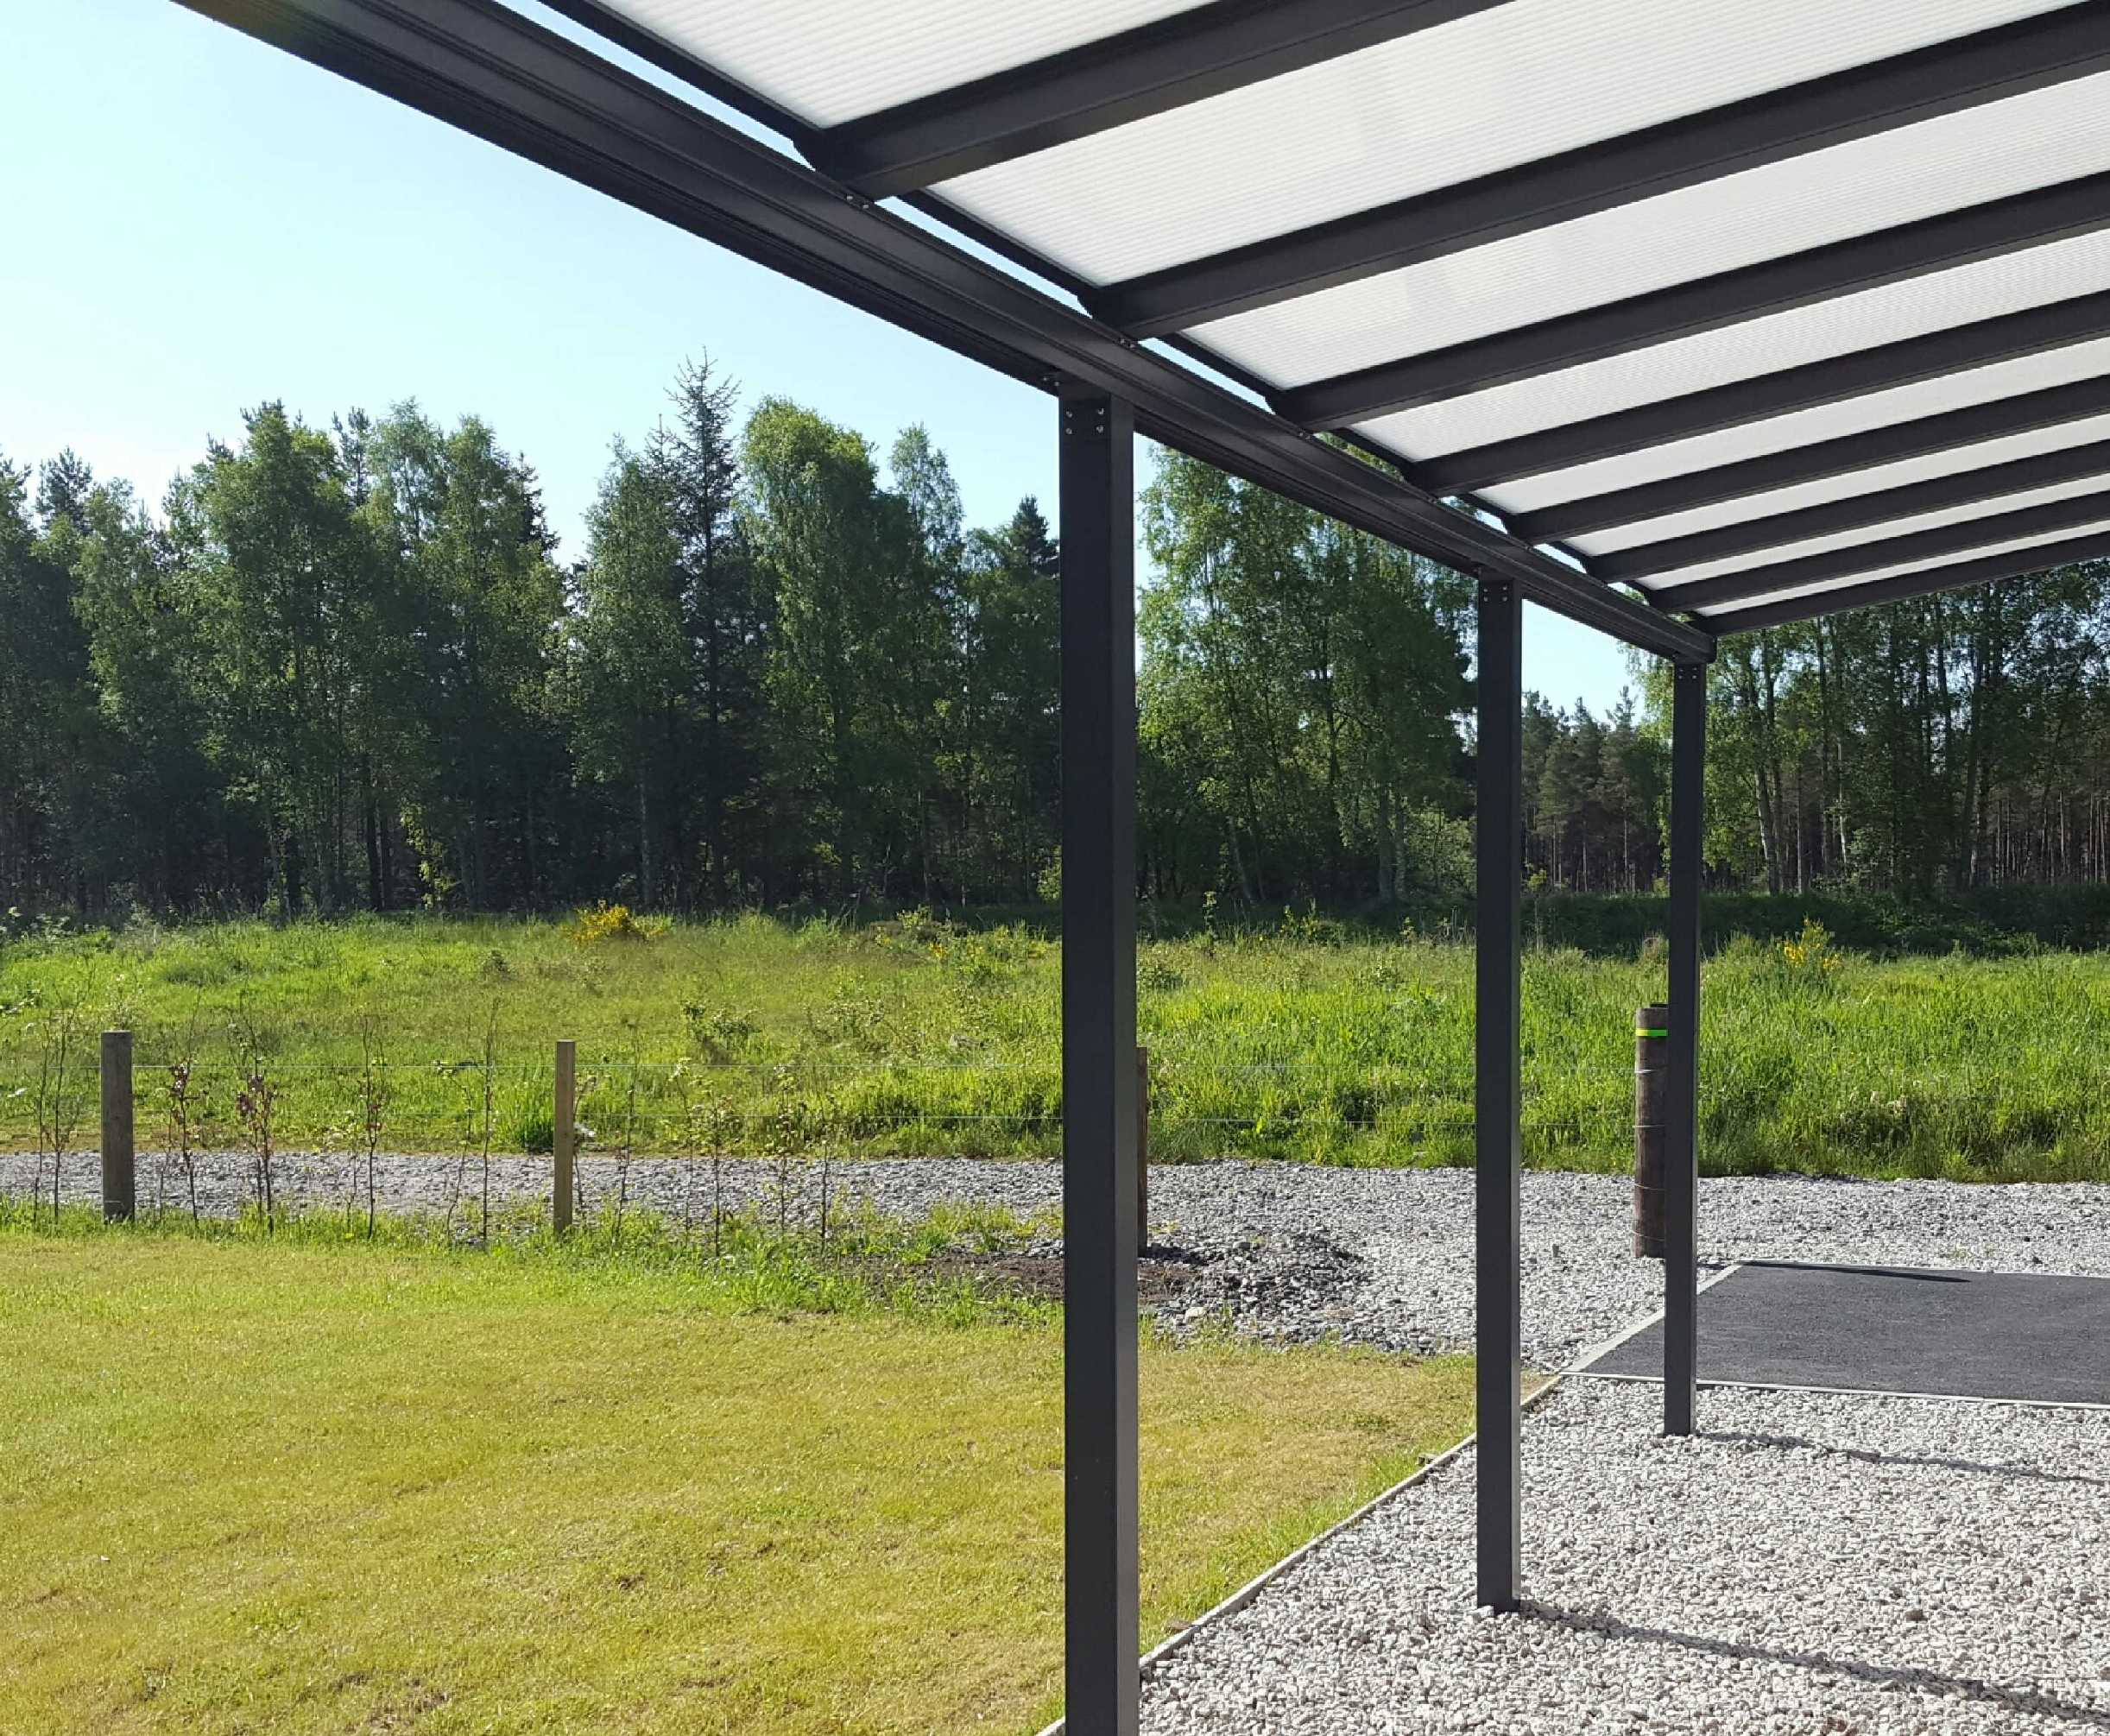 Omega Smart Lean-To Canopy, Anthracite Grey, 16mm Polycarbonate Glazing - 4.2m (W) x 4.0m (P), (3) Supporting Posts